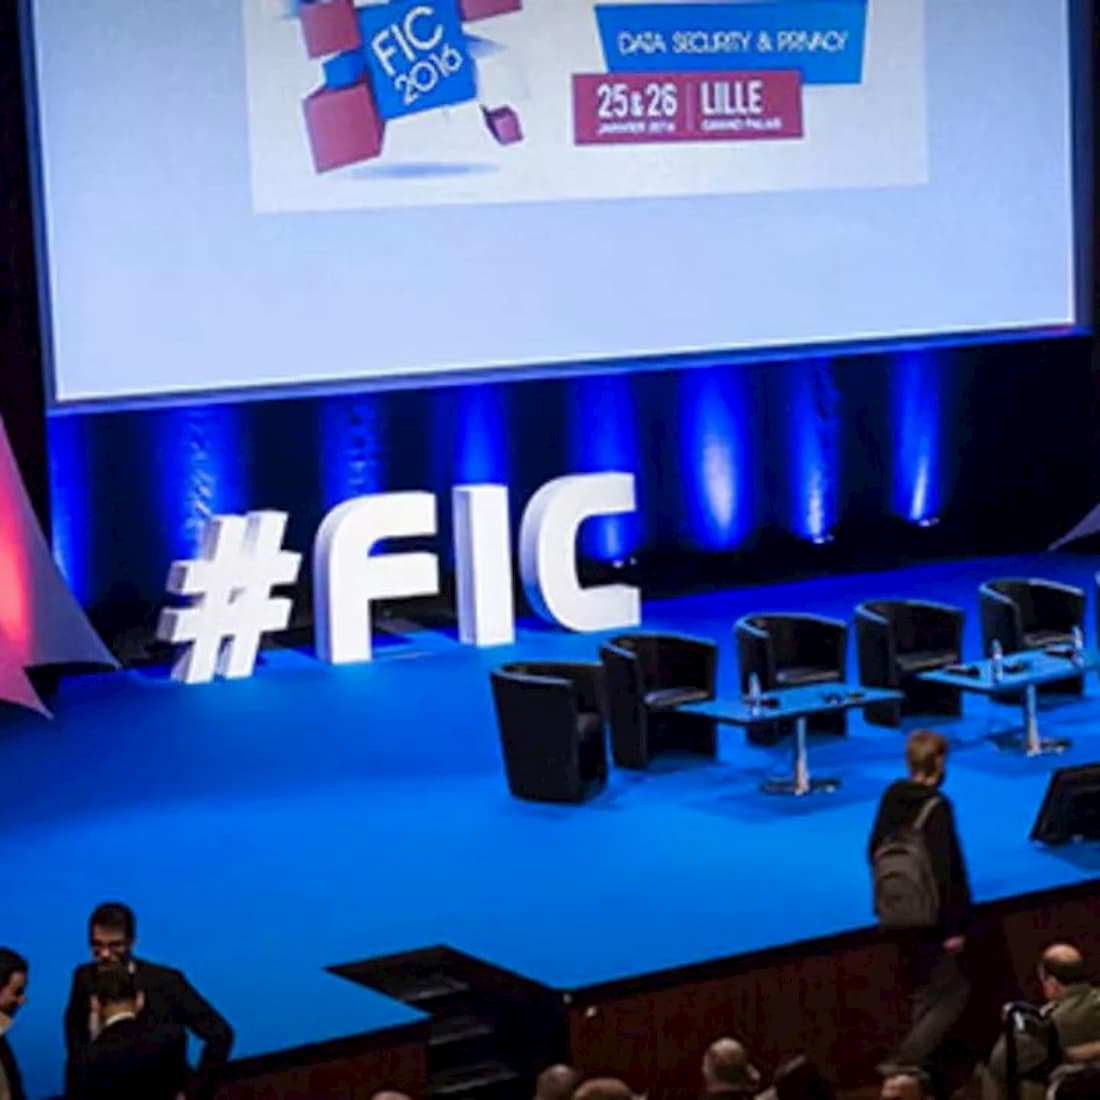 Forum International Cybersécurité 2019